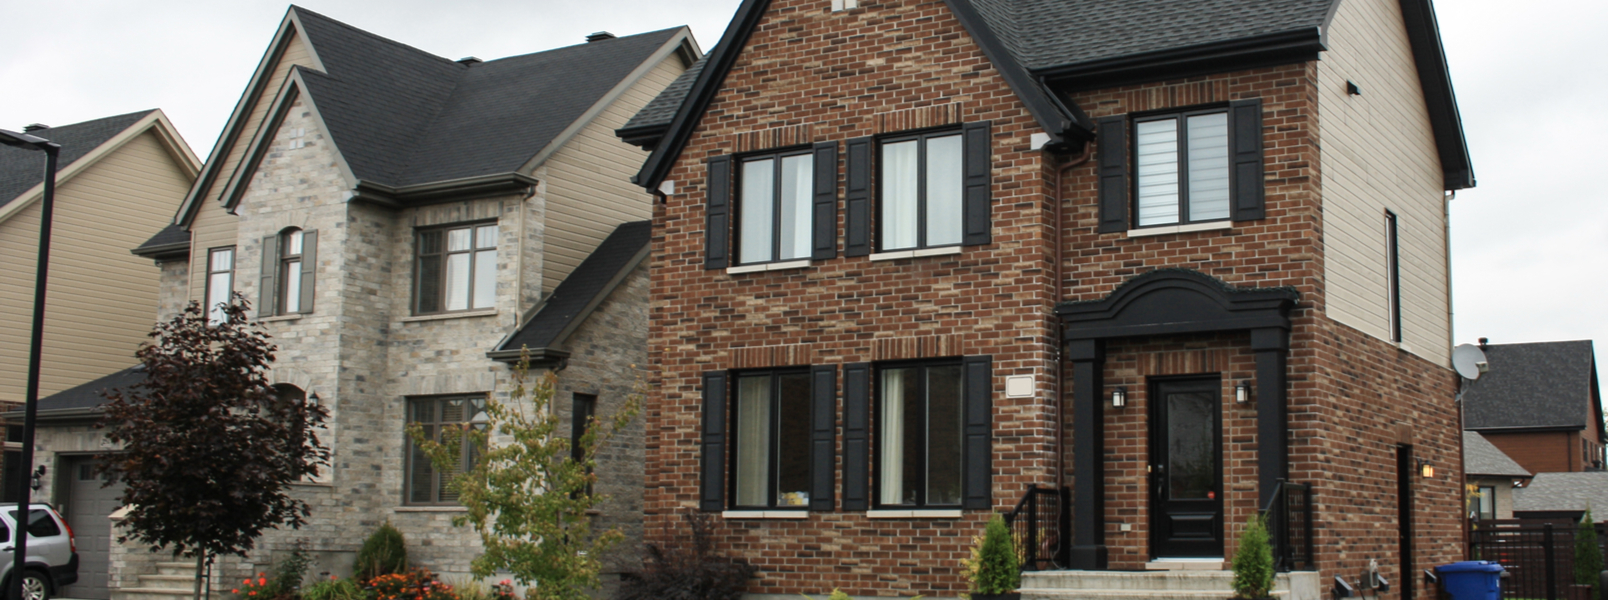 Meubles Brick Québec The Cost Of Getting Masonry Or Brick Work Done Reno Assistance